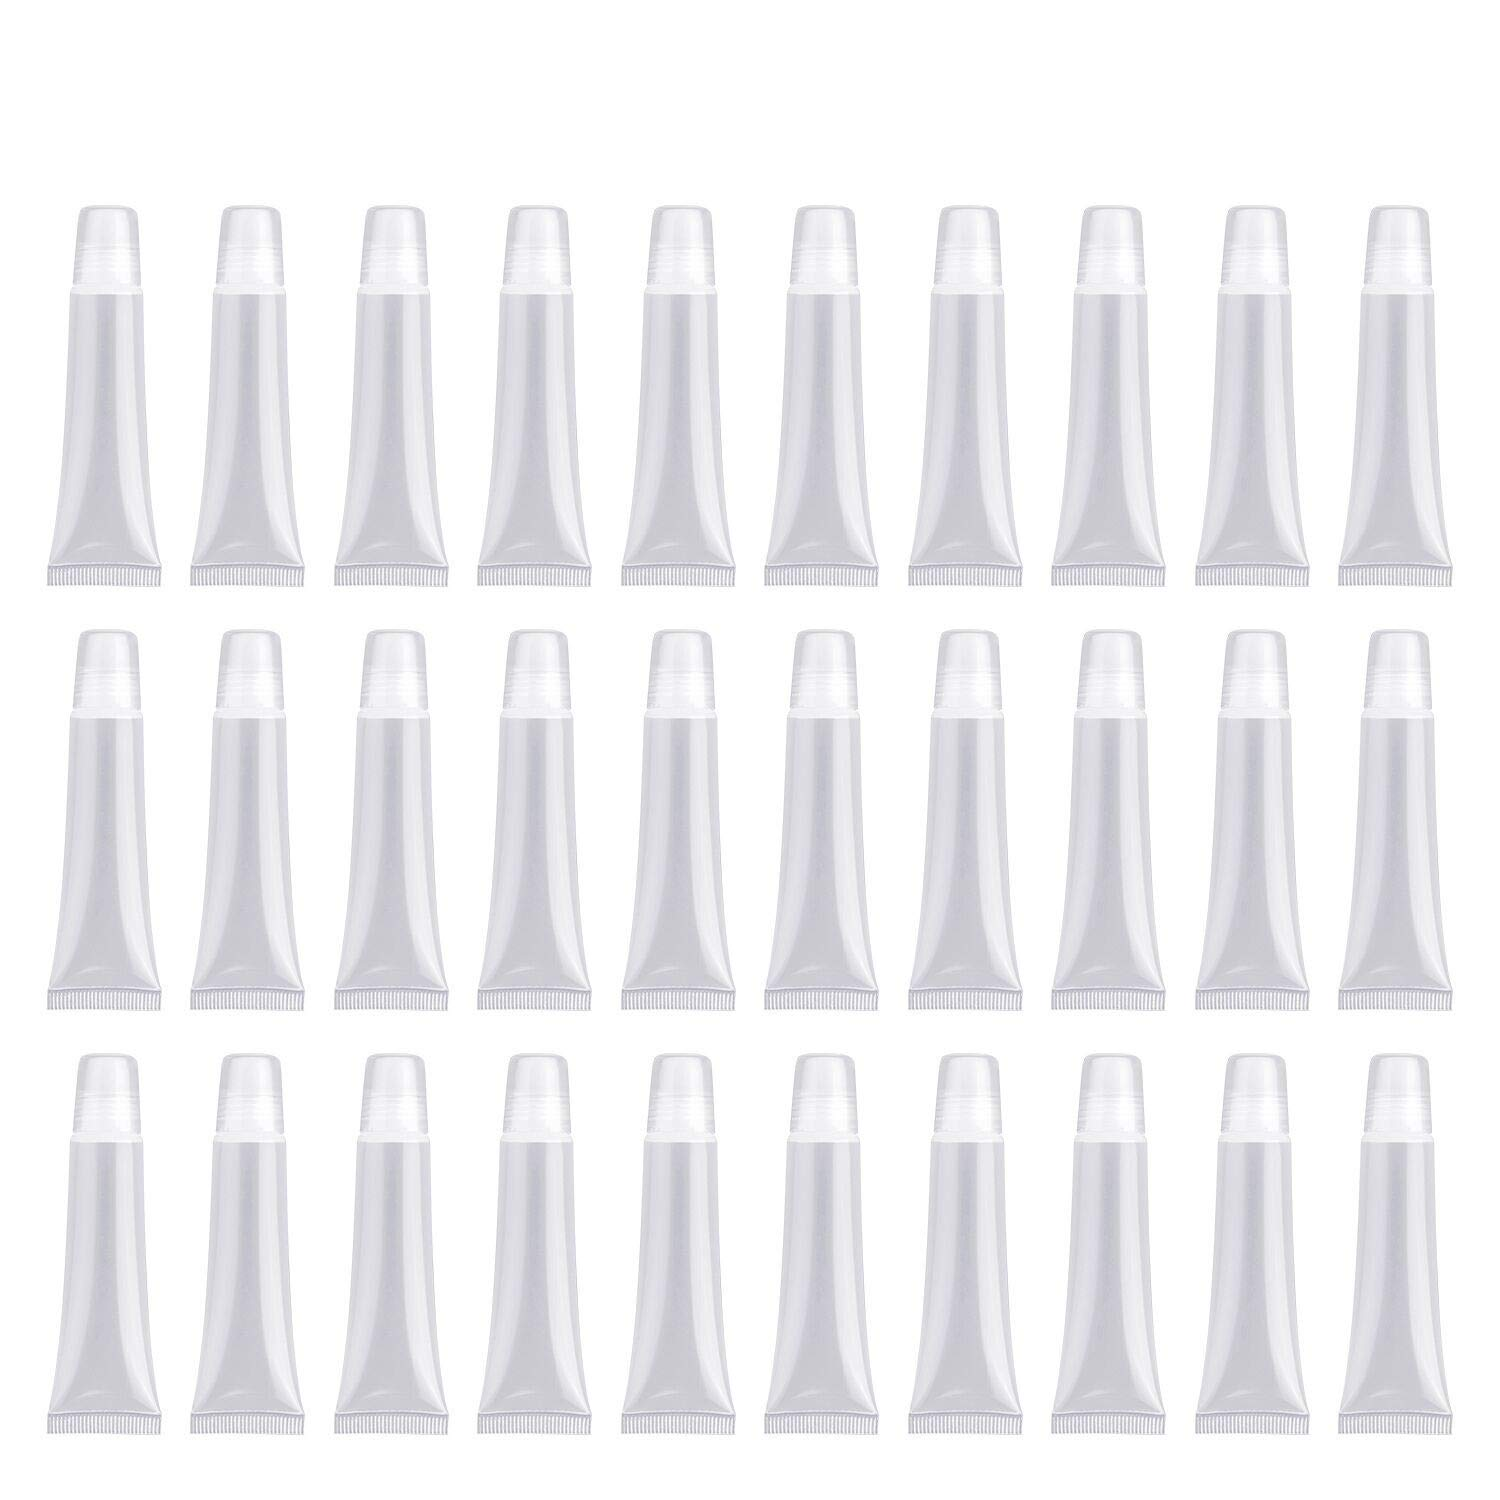 yiwoo 15ml 30pcs Empty Tubes Lip empty lip gloss containers for Lip Gloss Balm Cosmetic,Lip Balm Tube